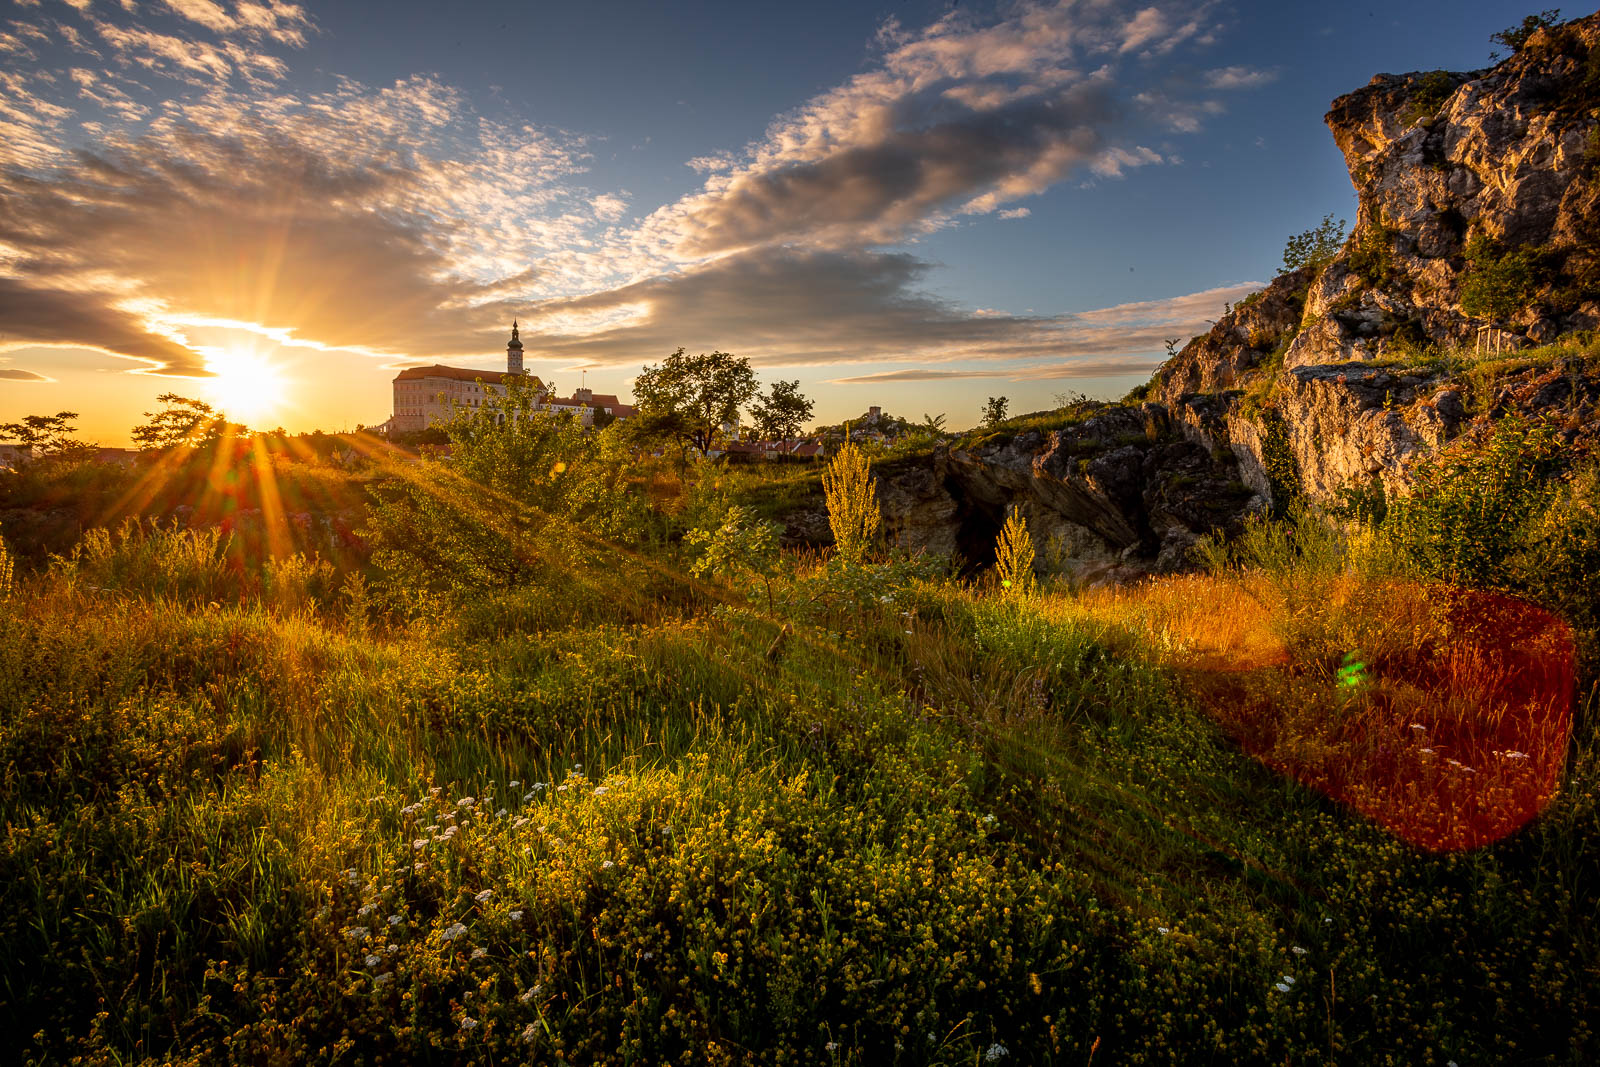 Sunset in the garden with the view of Mikulov castle., Czech Republic